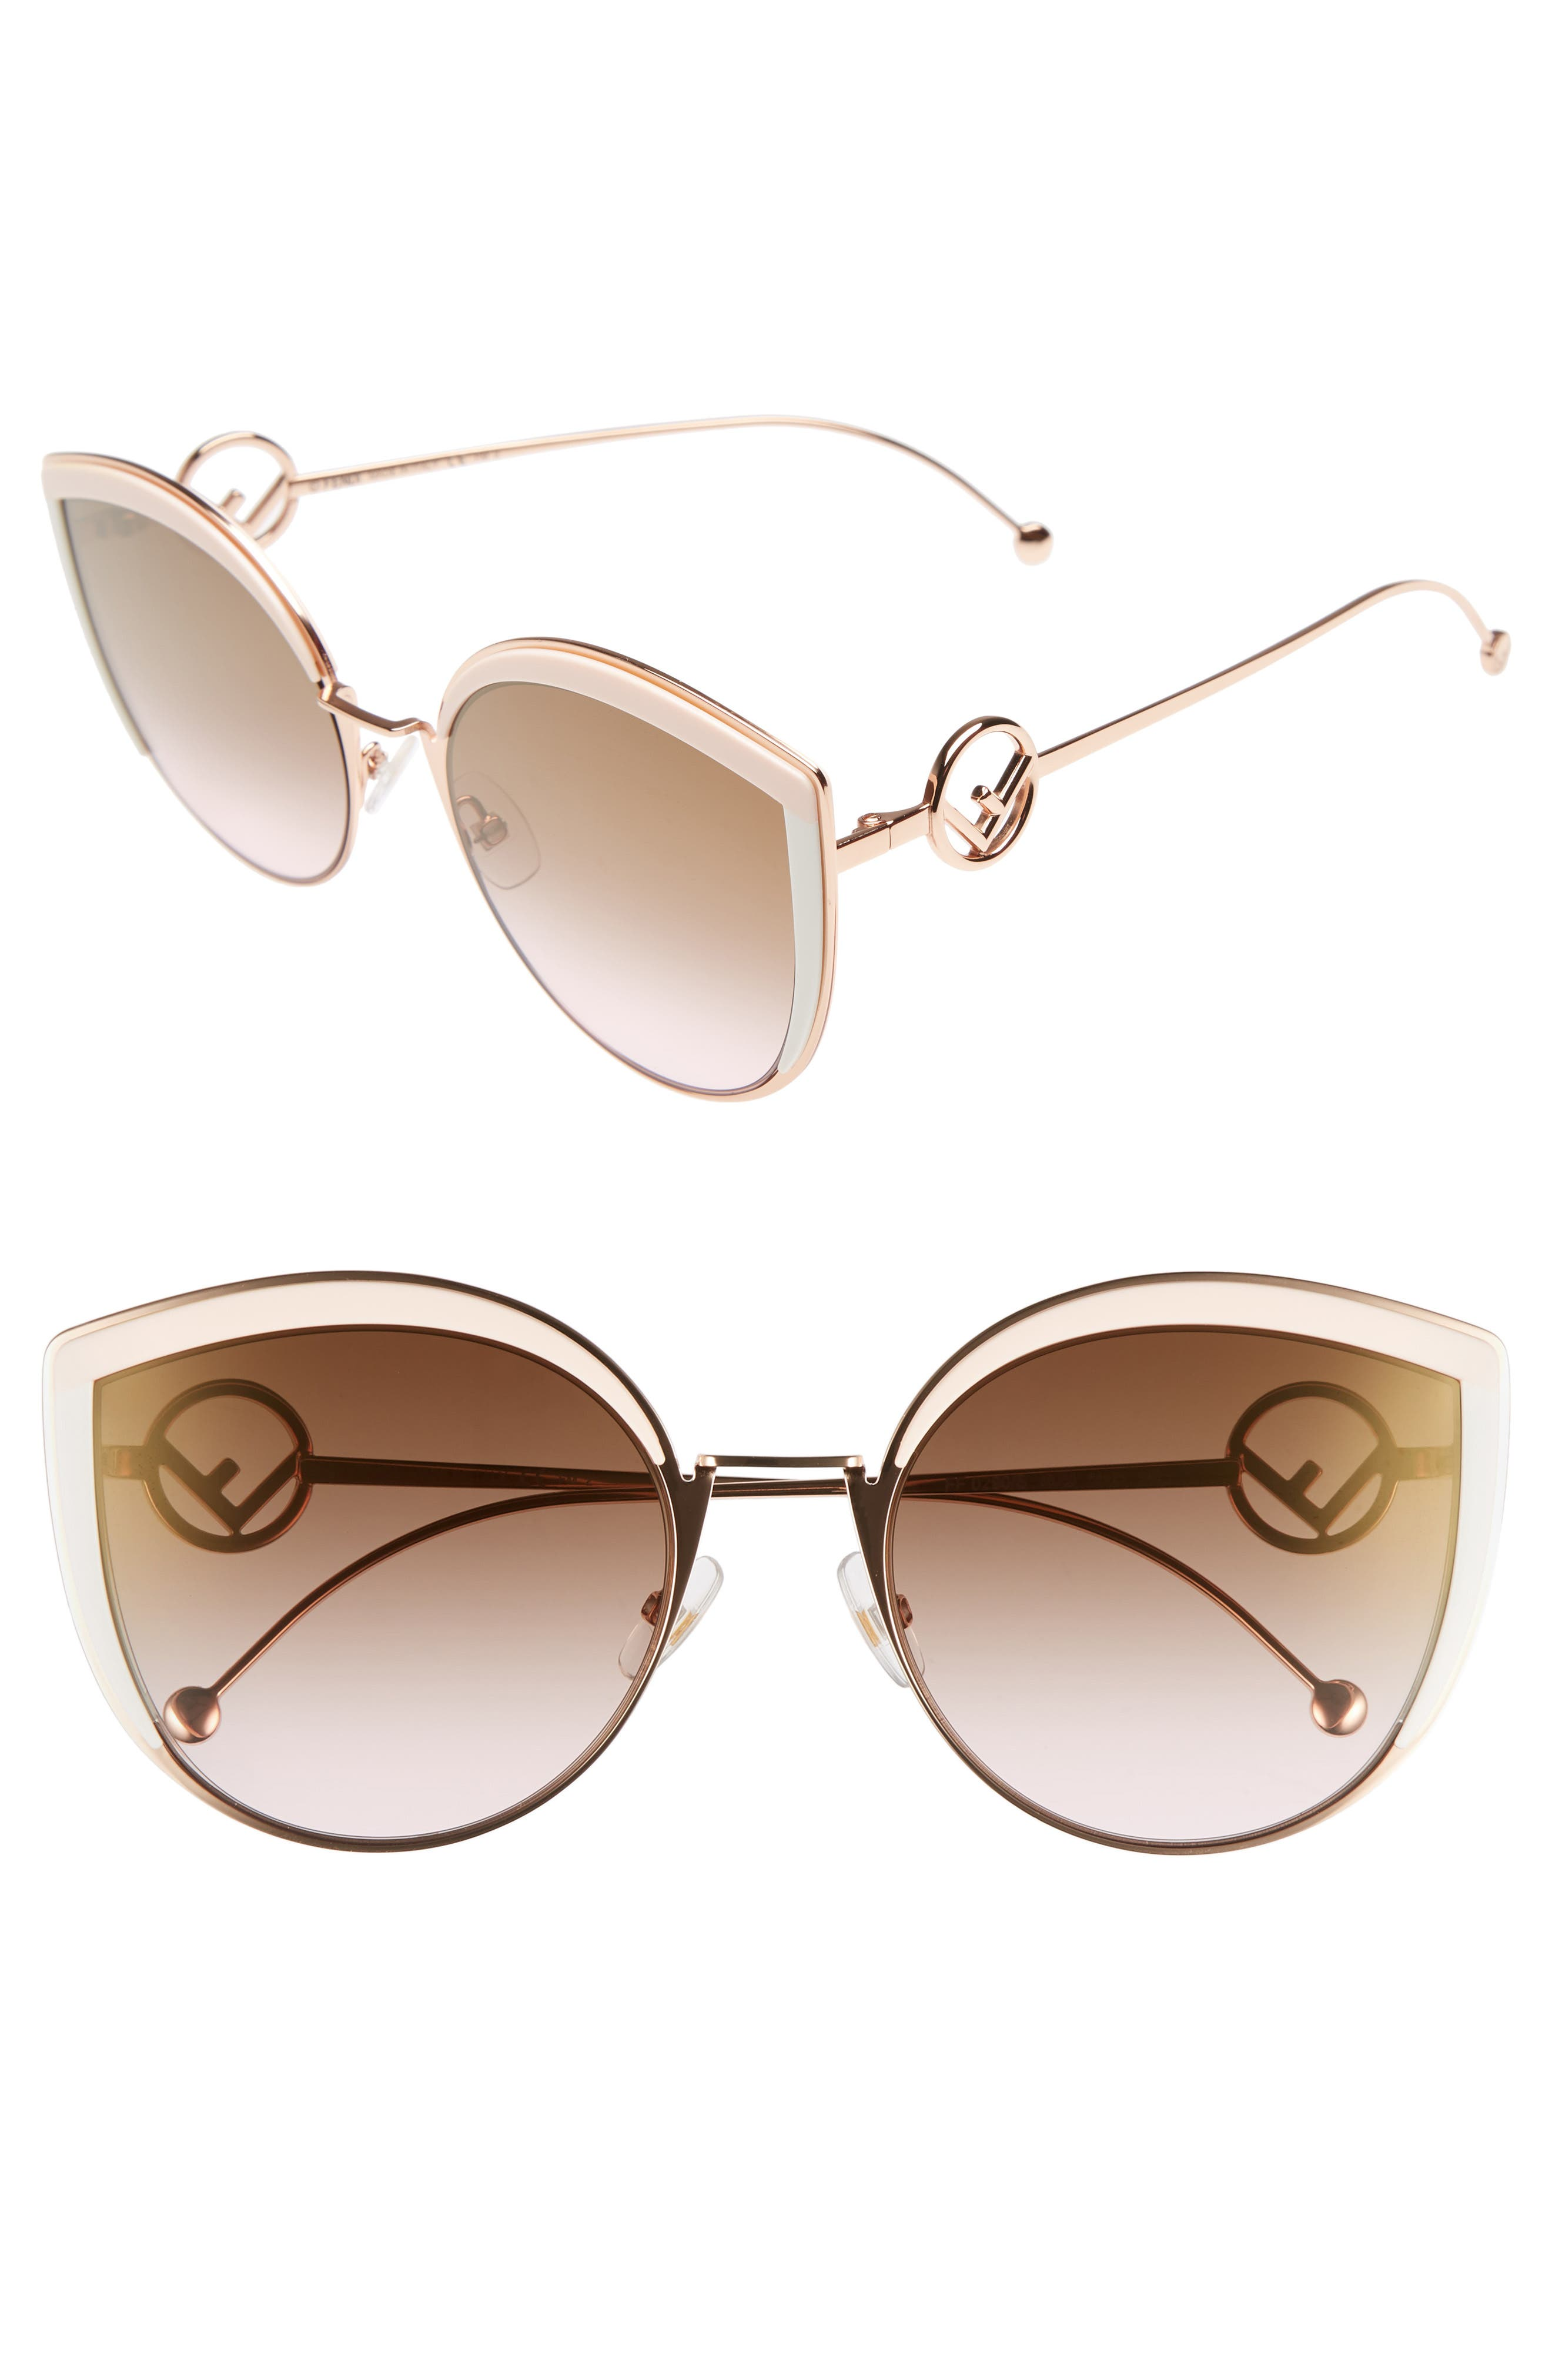 58mm Metal Butterfly Sunglasses,                             Main thumbnail 1, color,                             Pink